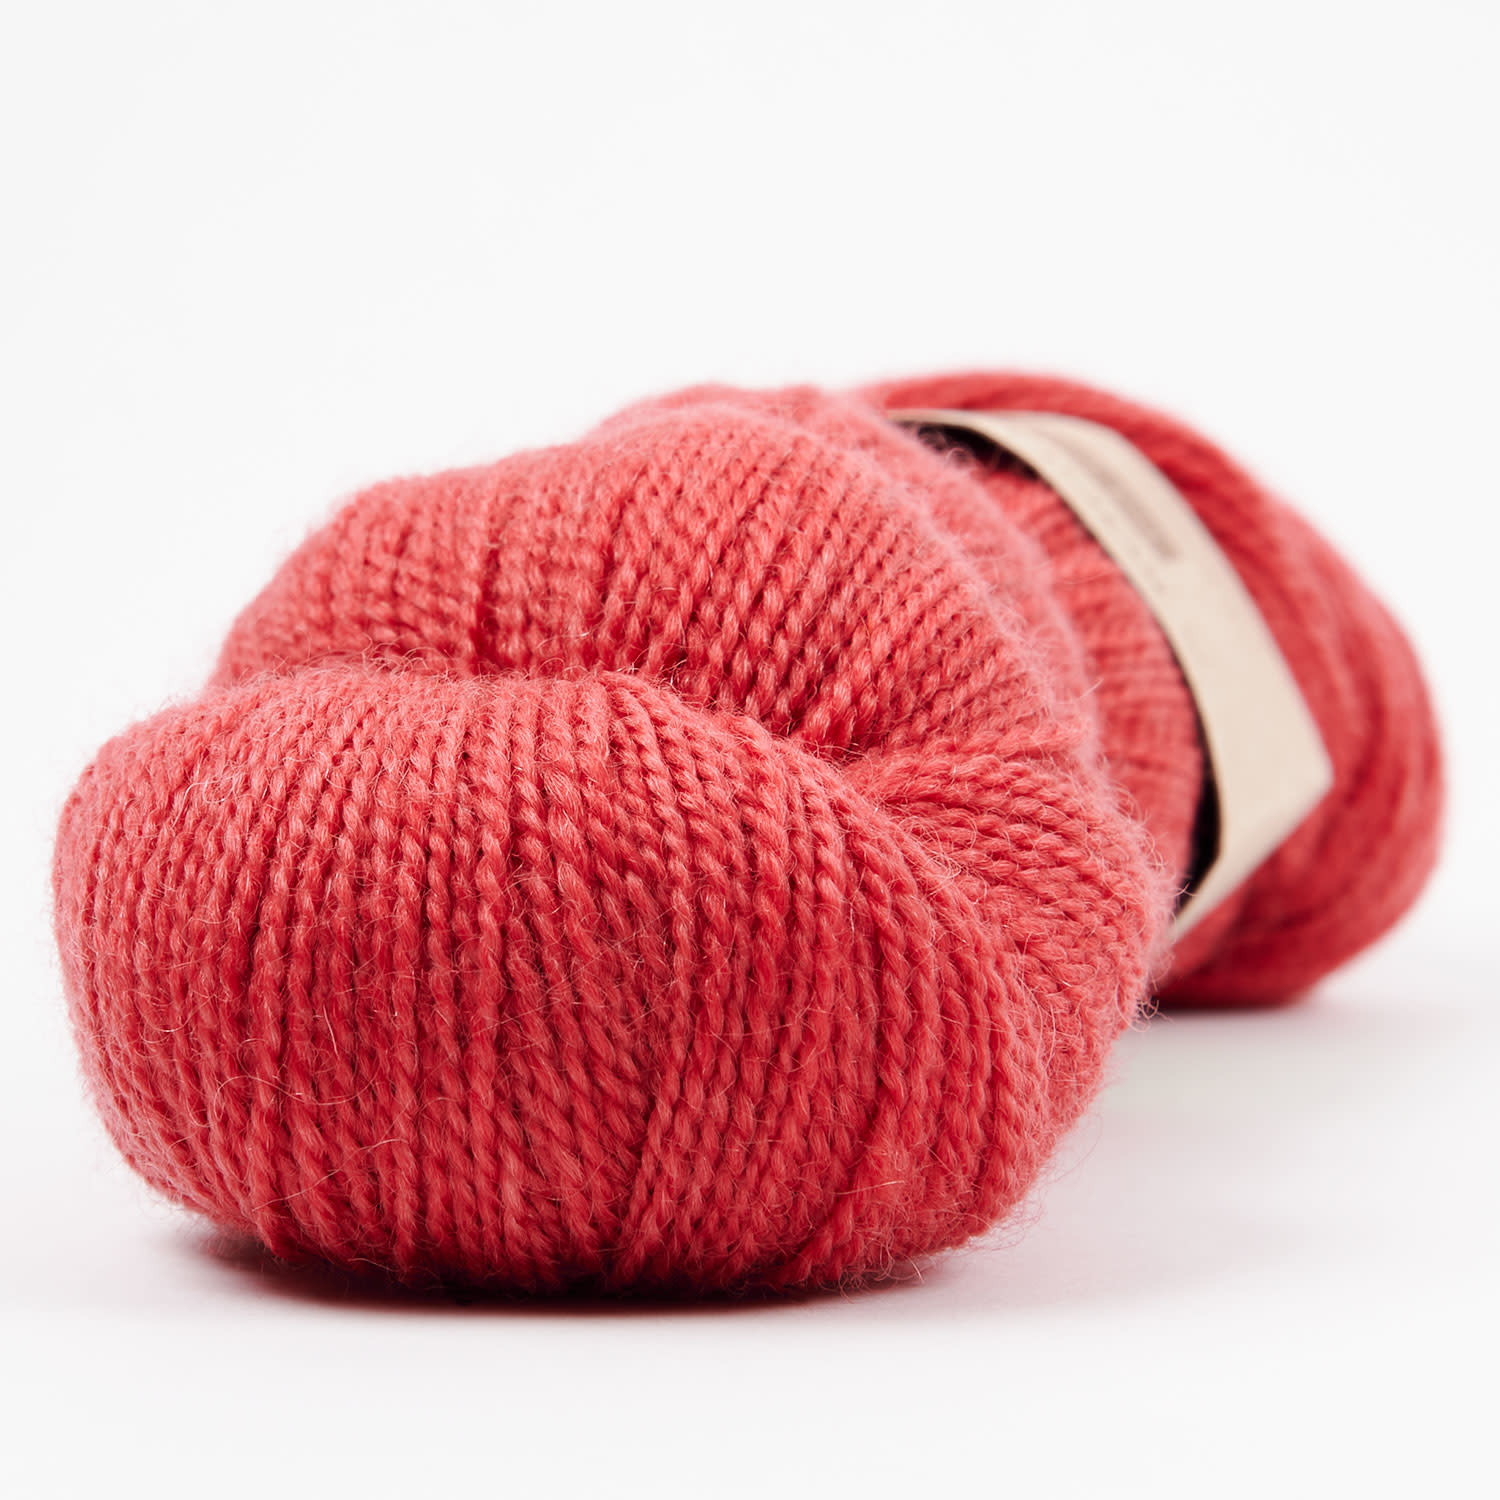 Susan Crawford A ROOM OF MY OWN: BLUEM SOCK - RED SKY AT NIGHT